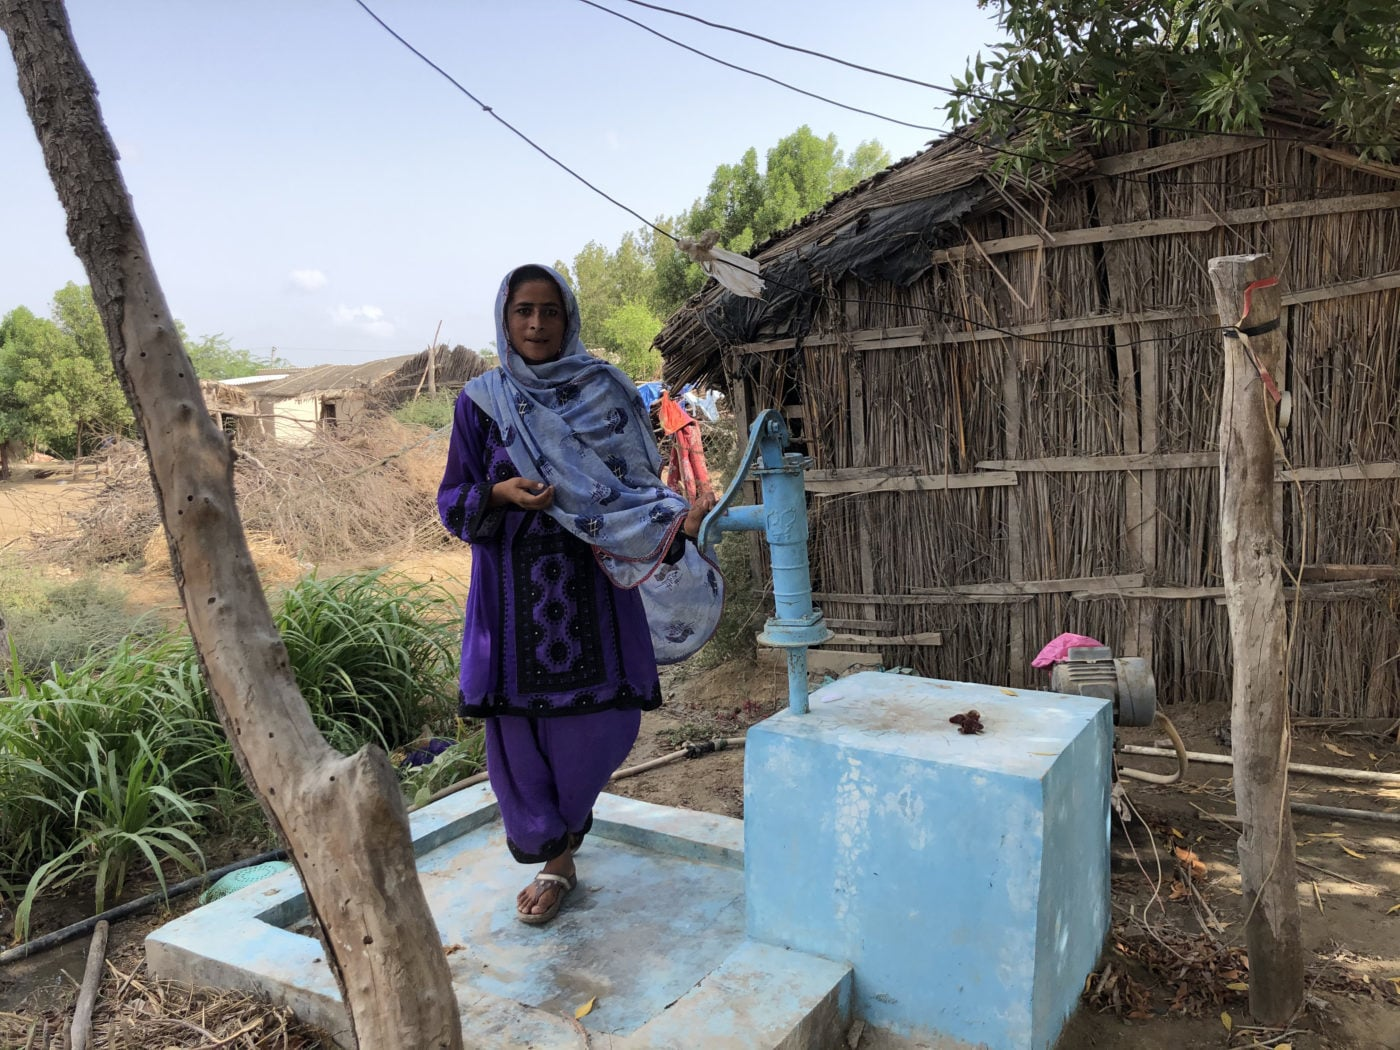 Malda Barkat stands next to a hand pump near her house in the village of Rato Khan Rind, in Thatta district. The intermittent supply means villagers must fetch water from a distance on a donkey cart. — Photo by Zofeen Ebrahim